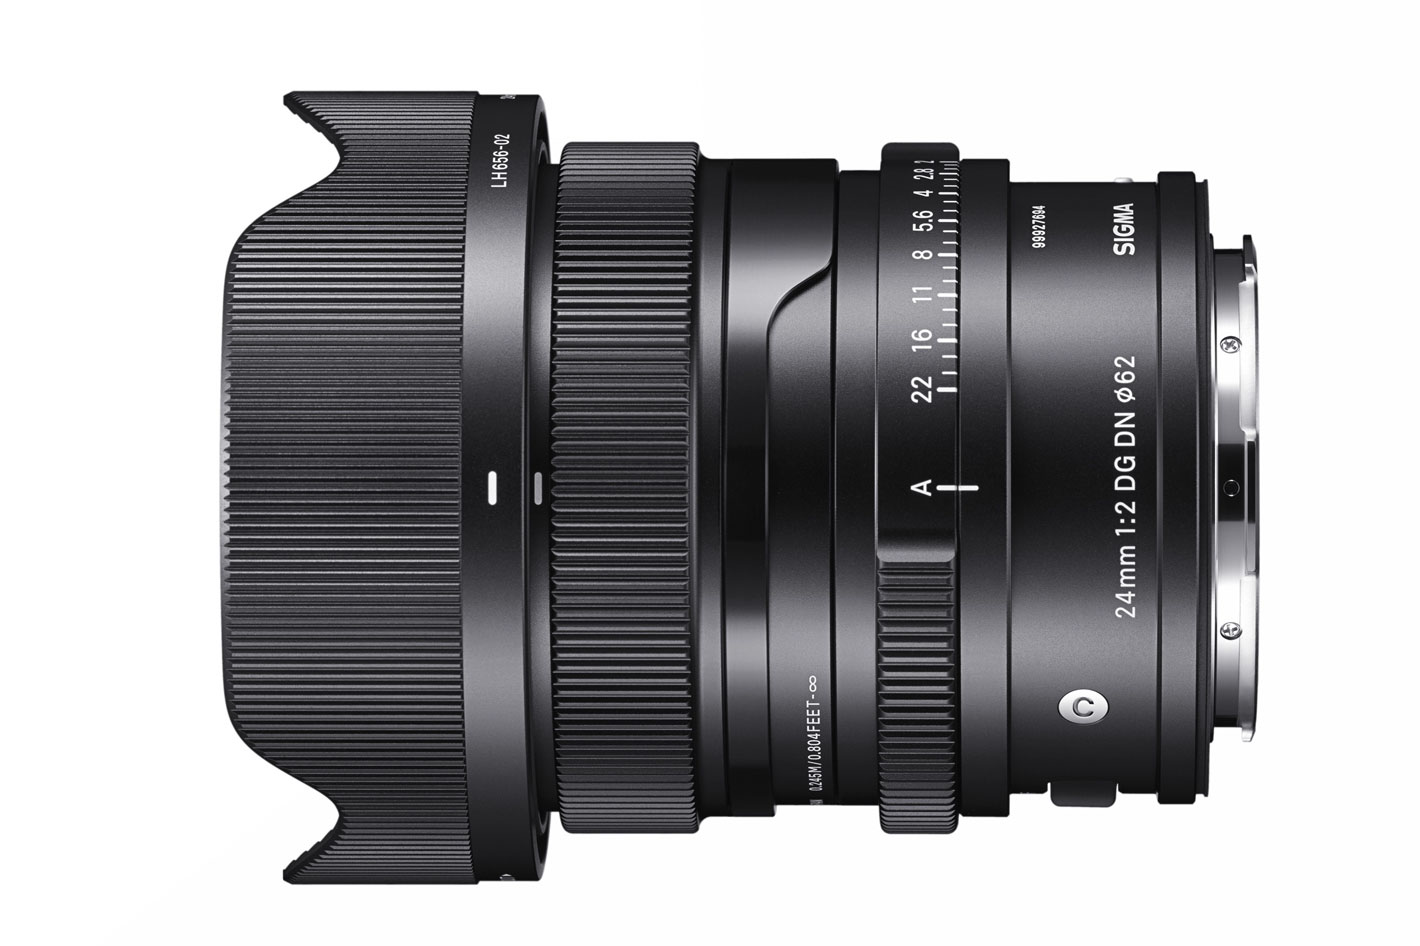 SIGMA introduces new lenses and announces contest